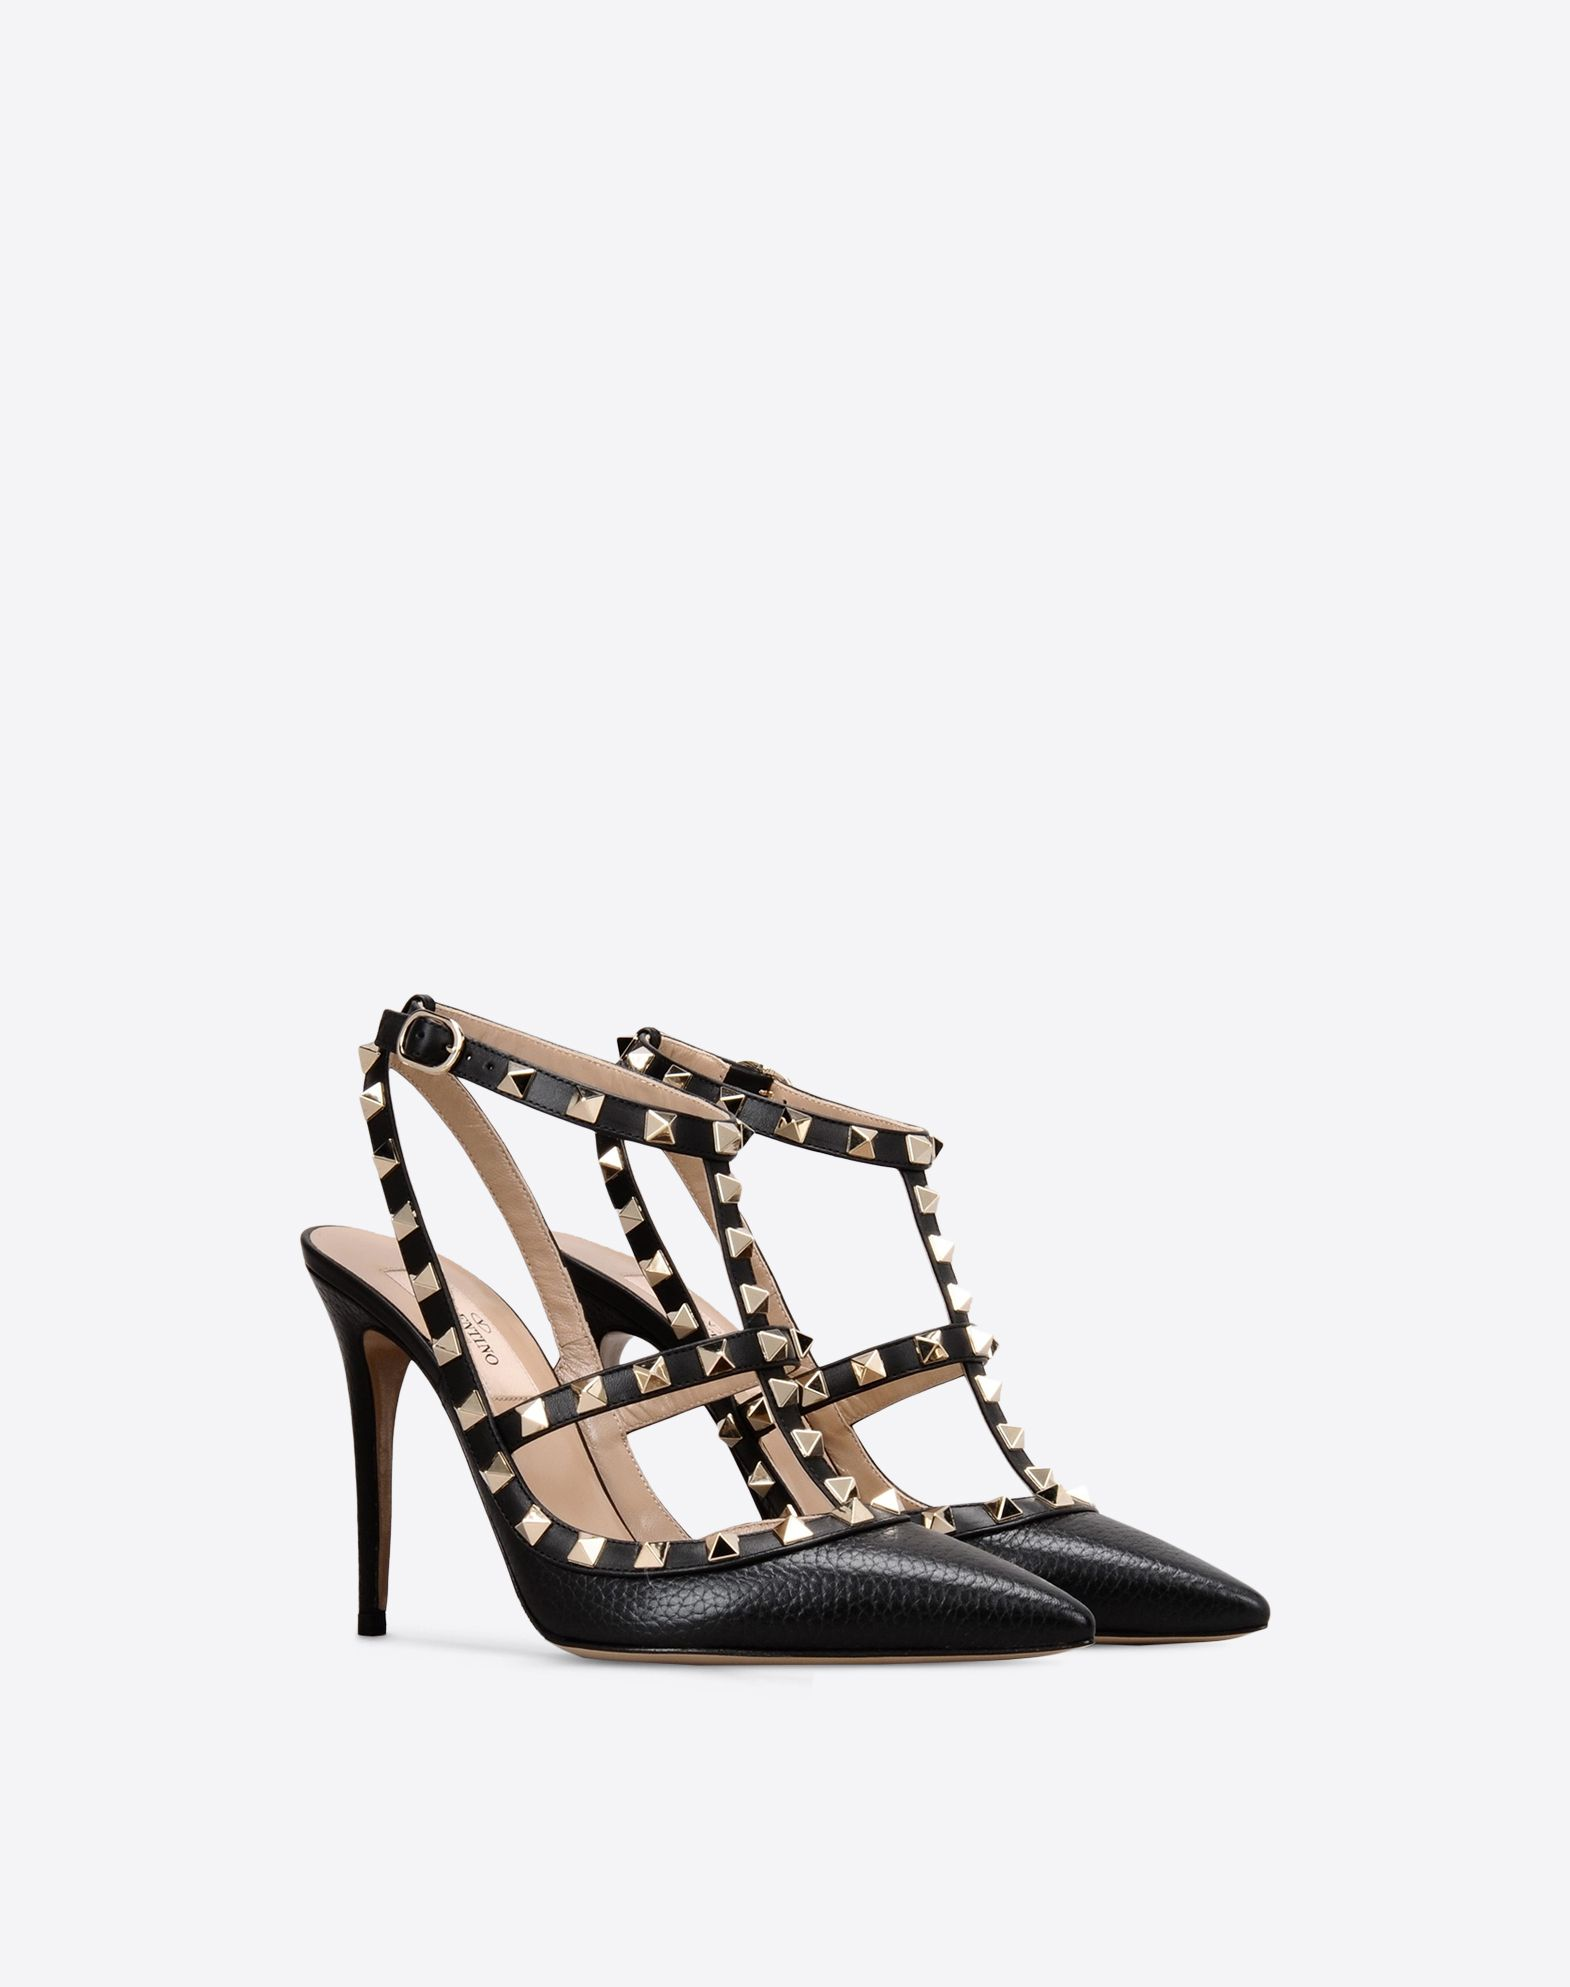 VALENTINO Studs Solid color Buckle Leather sole Textured leather Narrow toeline Spike heel  11061676qb